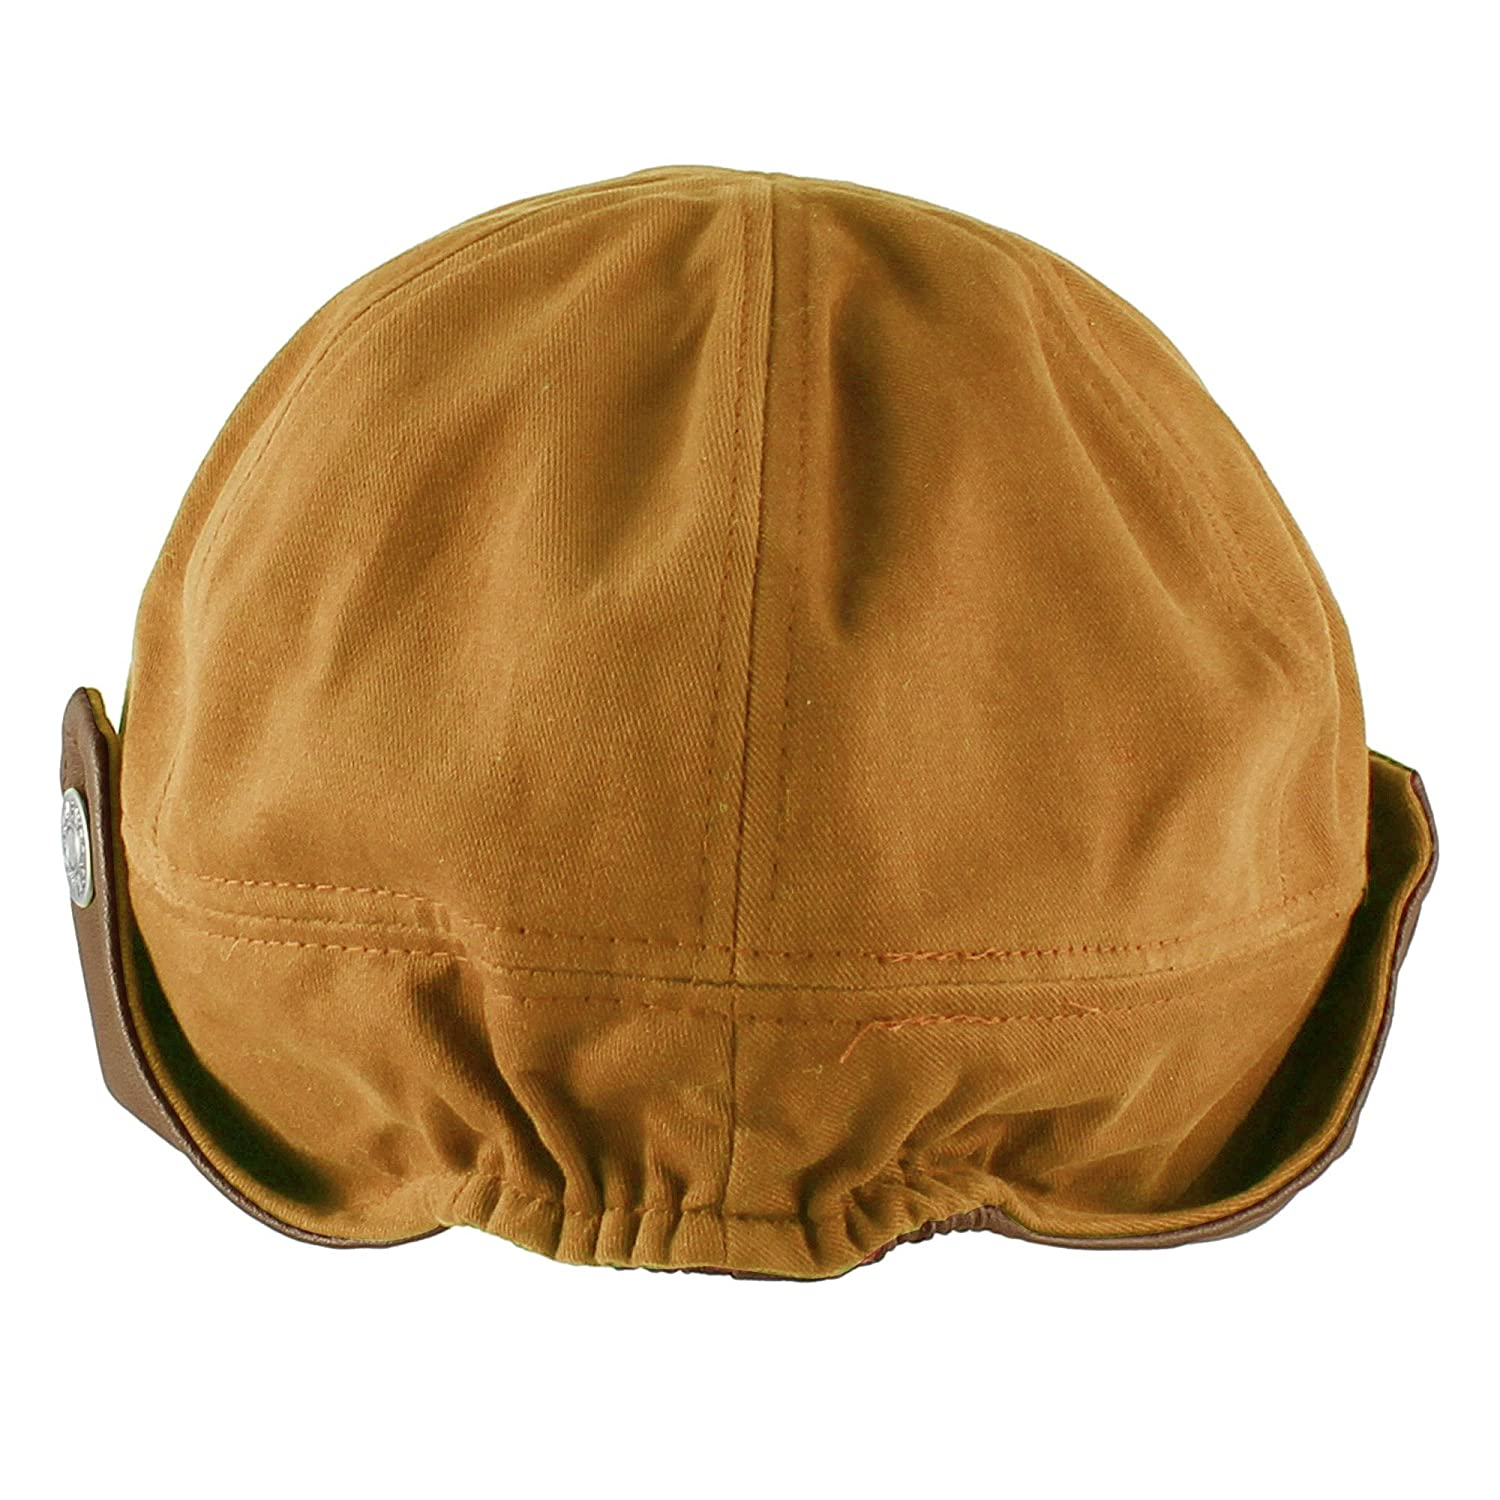 f7dda390bc6 Morehats Cotton Faux Leather Floppy Short Brim Hip-hop Baseball Cap Aviator  Trapper Hat - Mustard at Amazon Men's Clothing store: